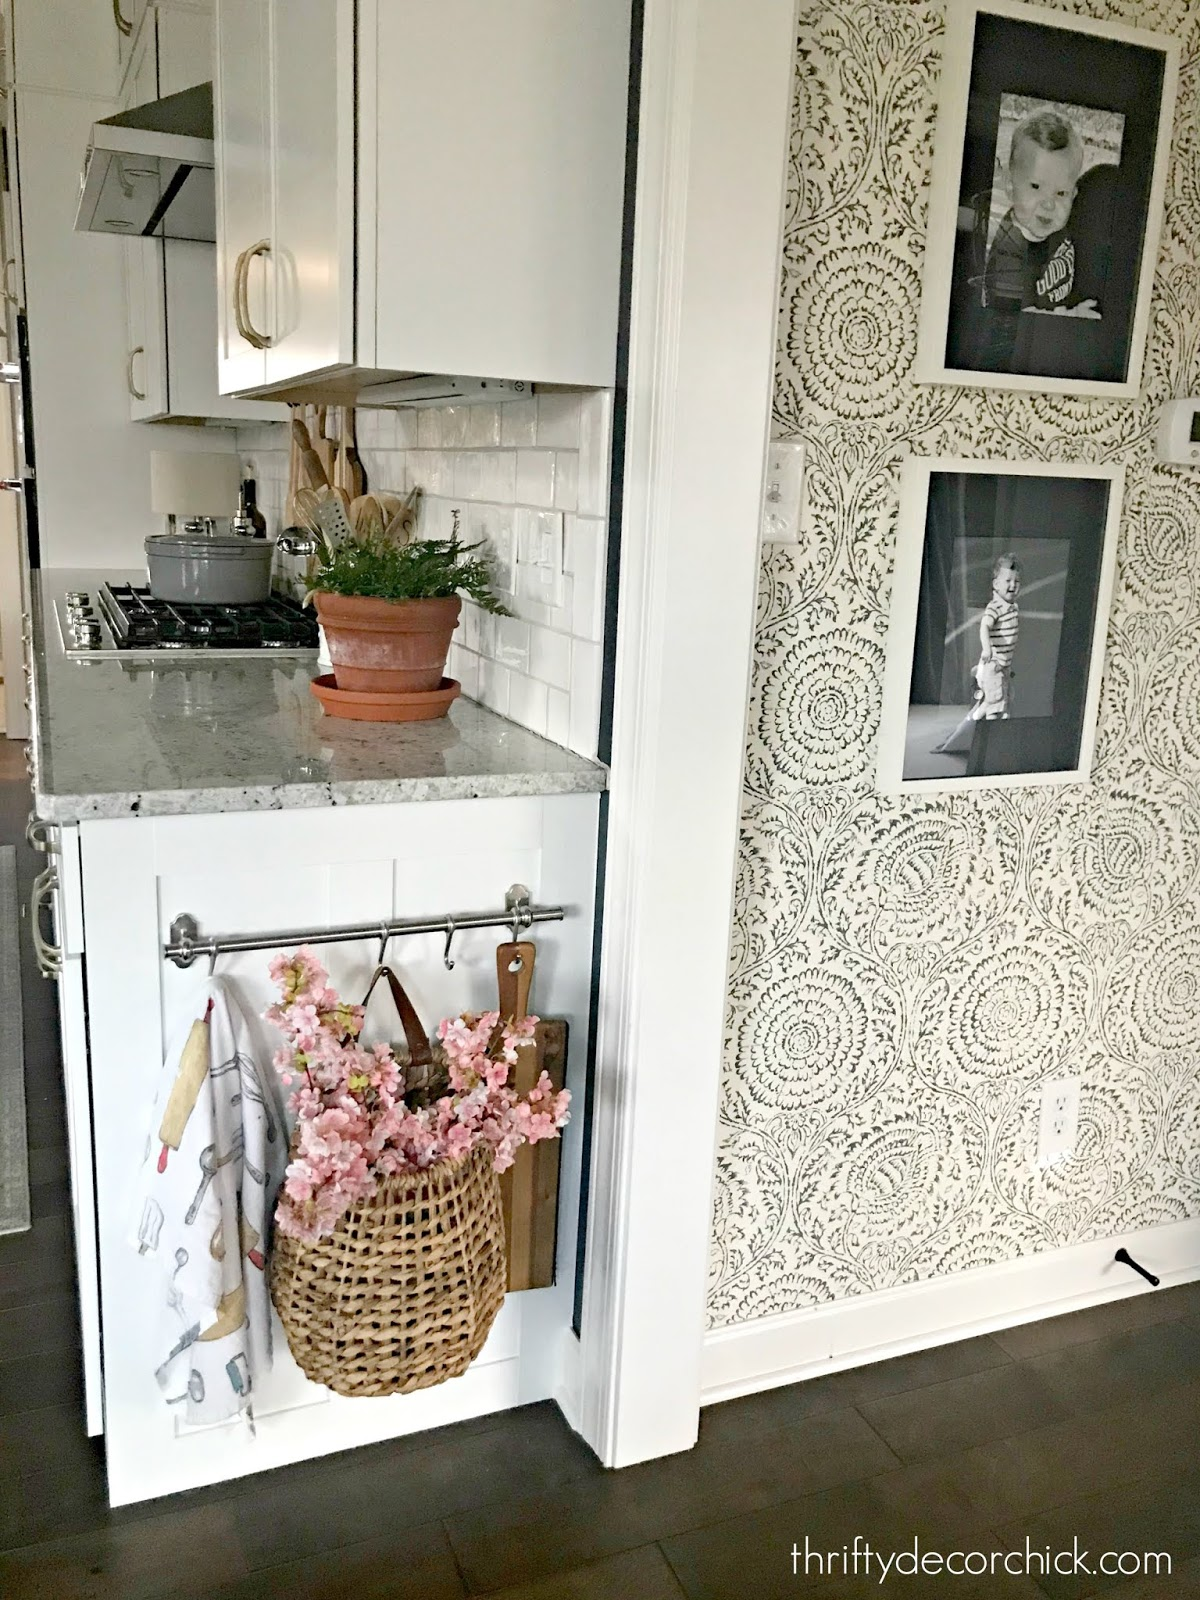 Adding character to builder grade kitchen